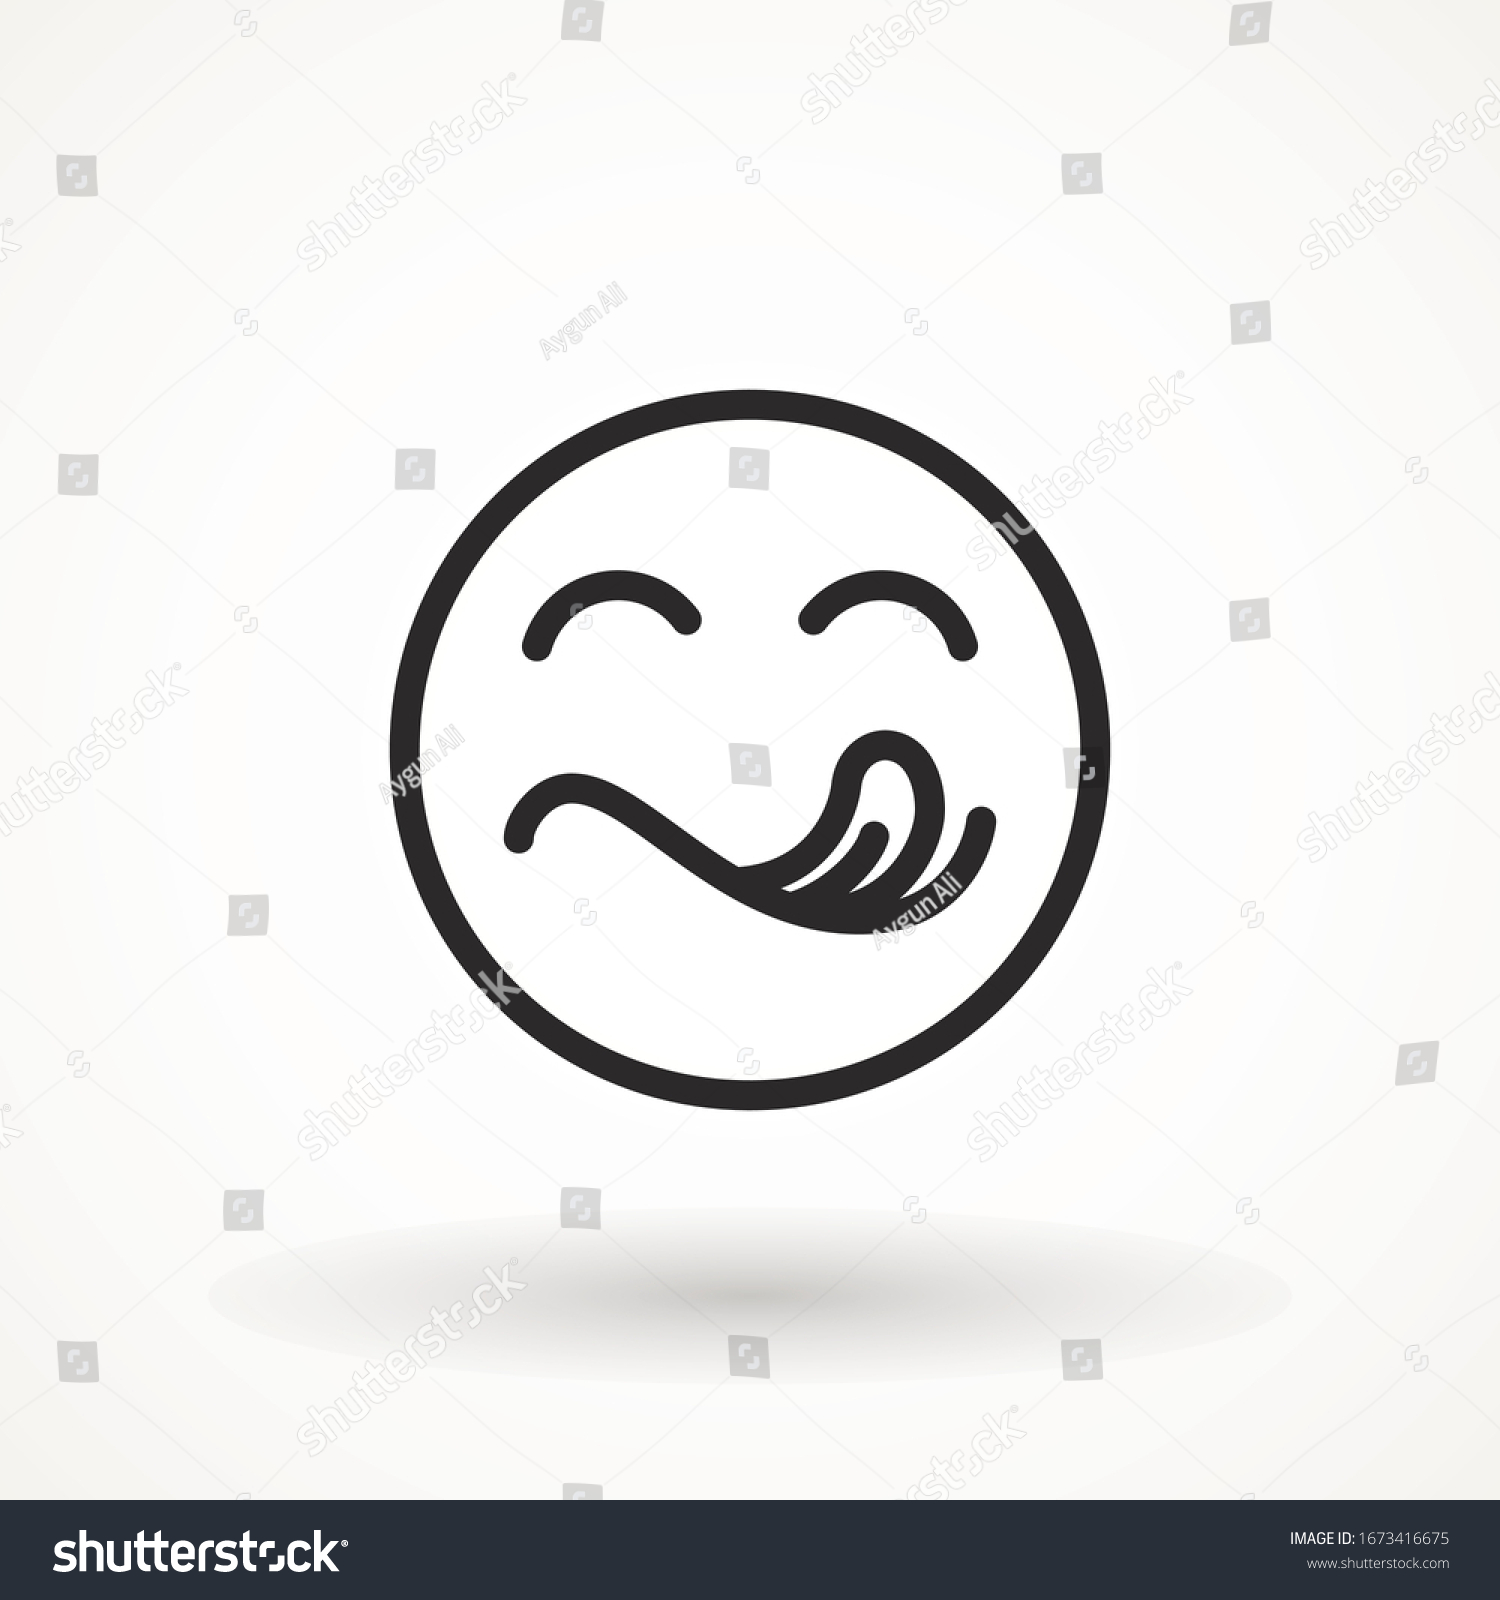 Yummy smile emoticon with tongue lick mouth icon. Tasty food eating emoji face. Delicious cartoon with saliva drops on white background. Smile face line design. Savory gourmet. Yummy vector #1673416675